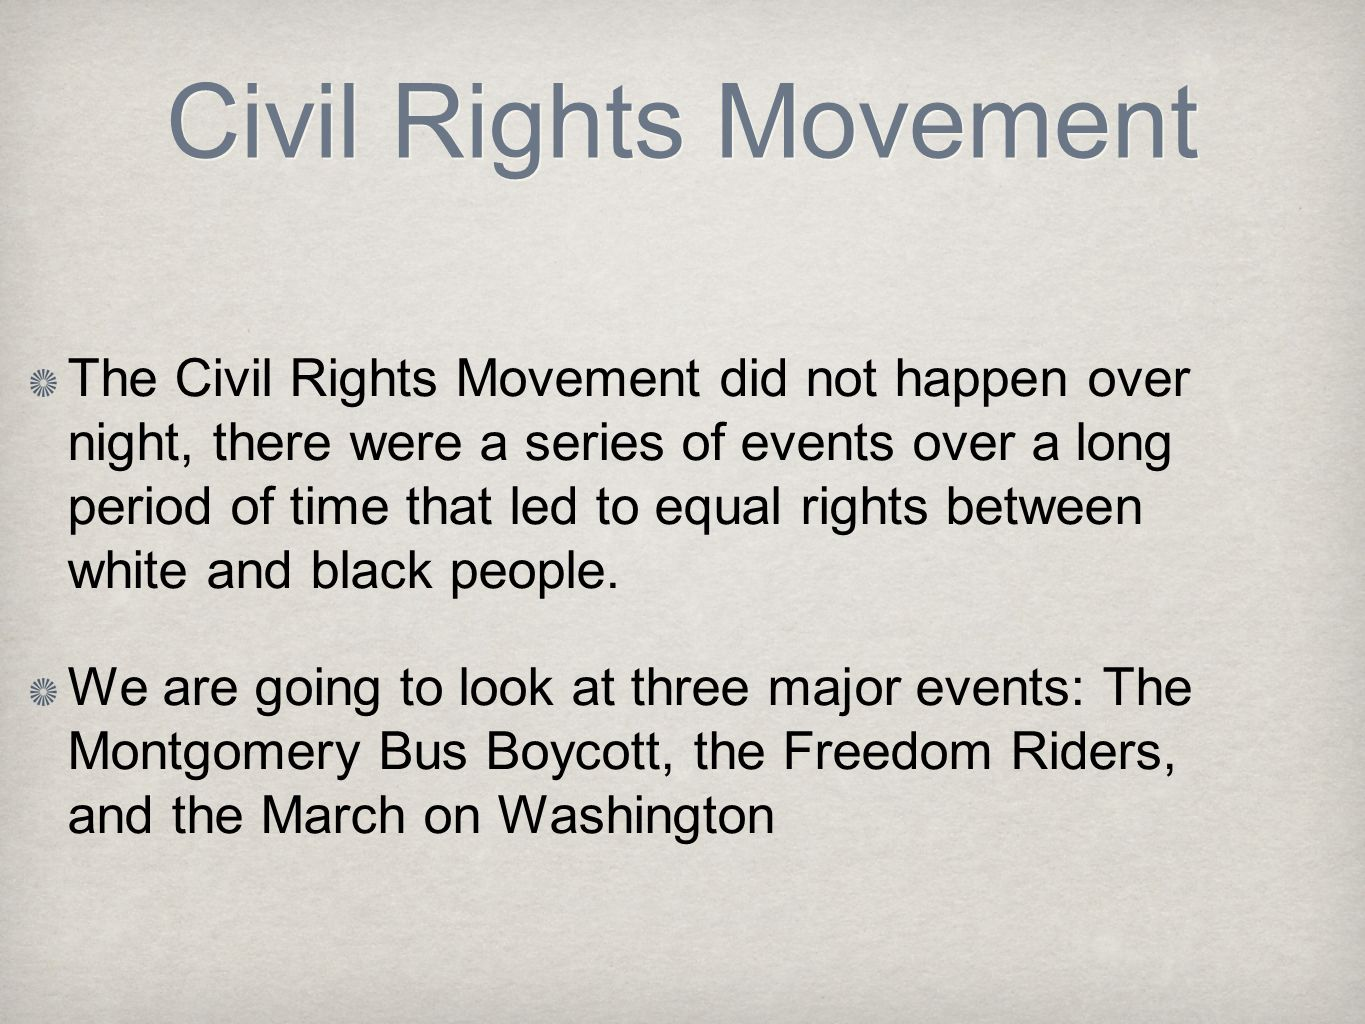 how did the civil rights movement The civil rights movement was a heroic episode in american history it aimed to give african americans the same citizenship rights that whites took for granted it was a war waged on many fronts.